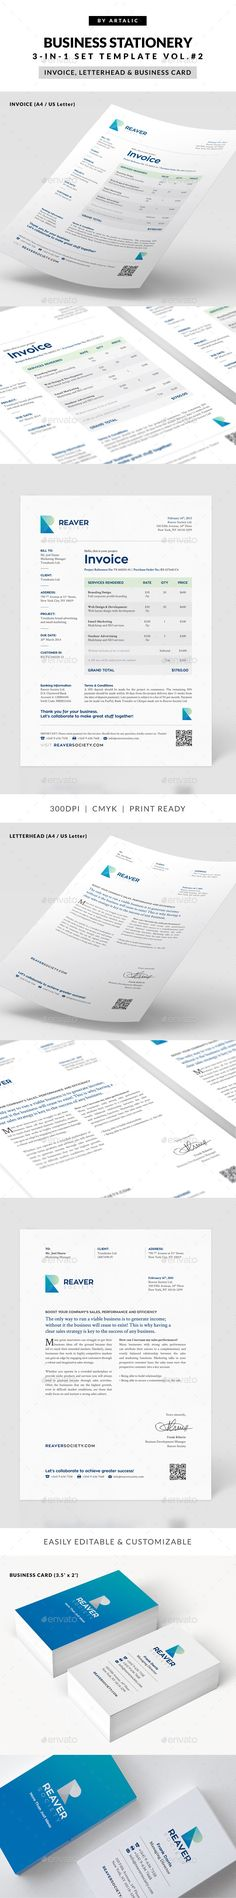 commercial proposal template #21 Branding Pinterest Proposal - commercial proposal template